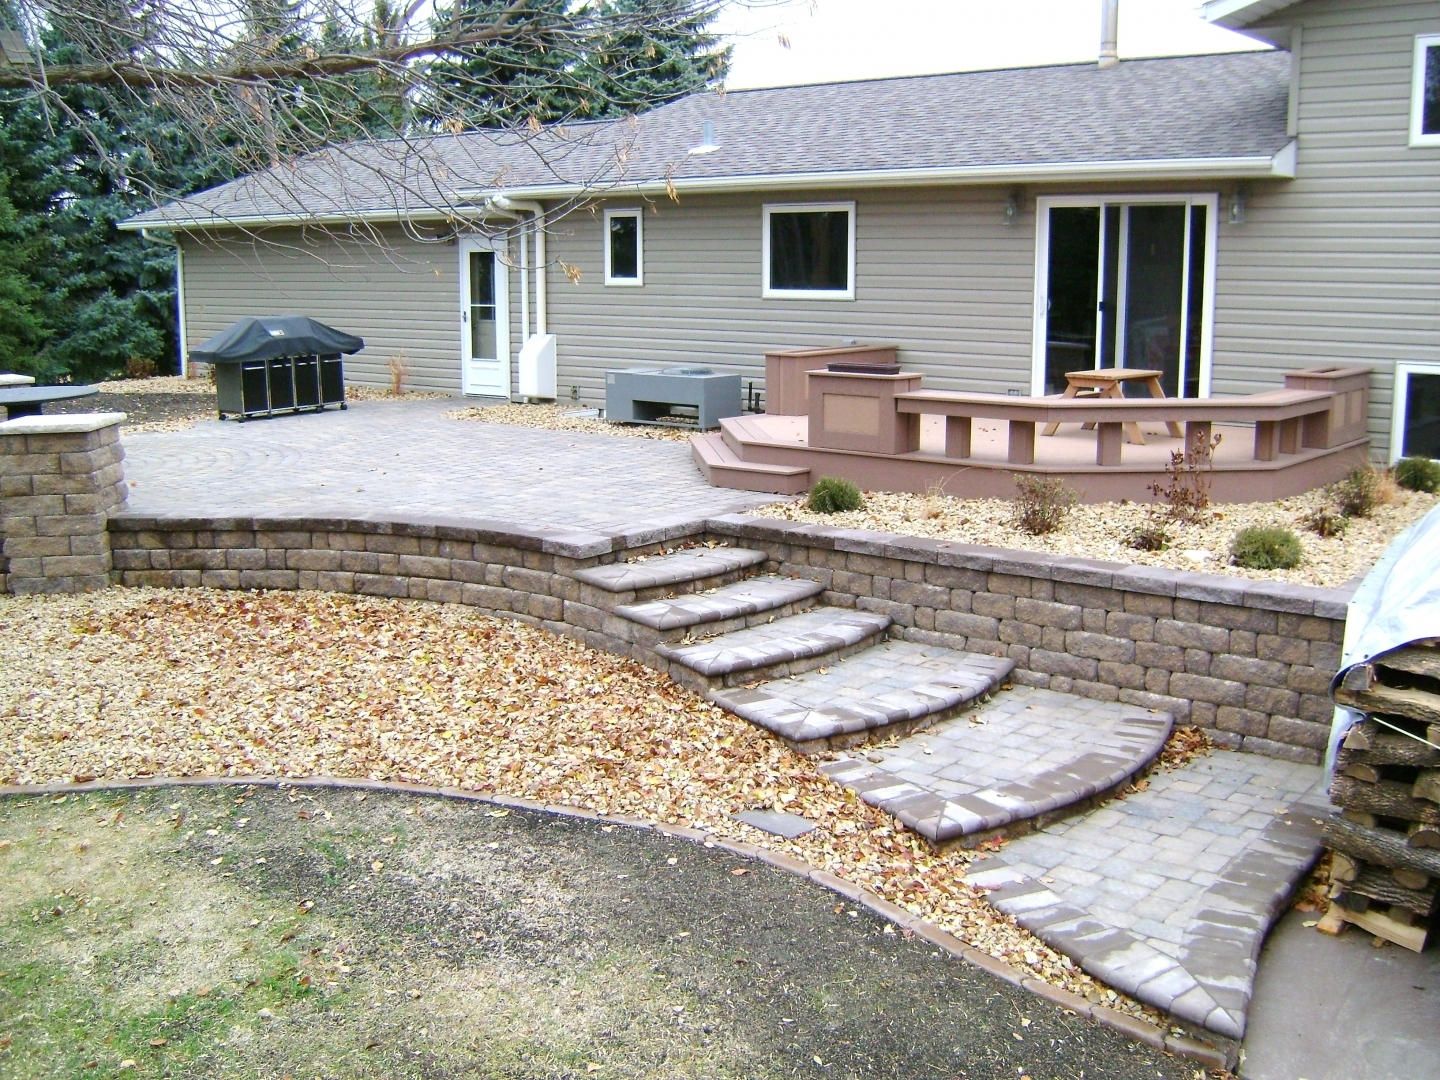 Image of: Oasis Landscapes Landscaping In Fargo Nd Surrounding Area Intended For Hardscape Landscaping Hardscape Landscaping A Hill